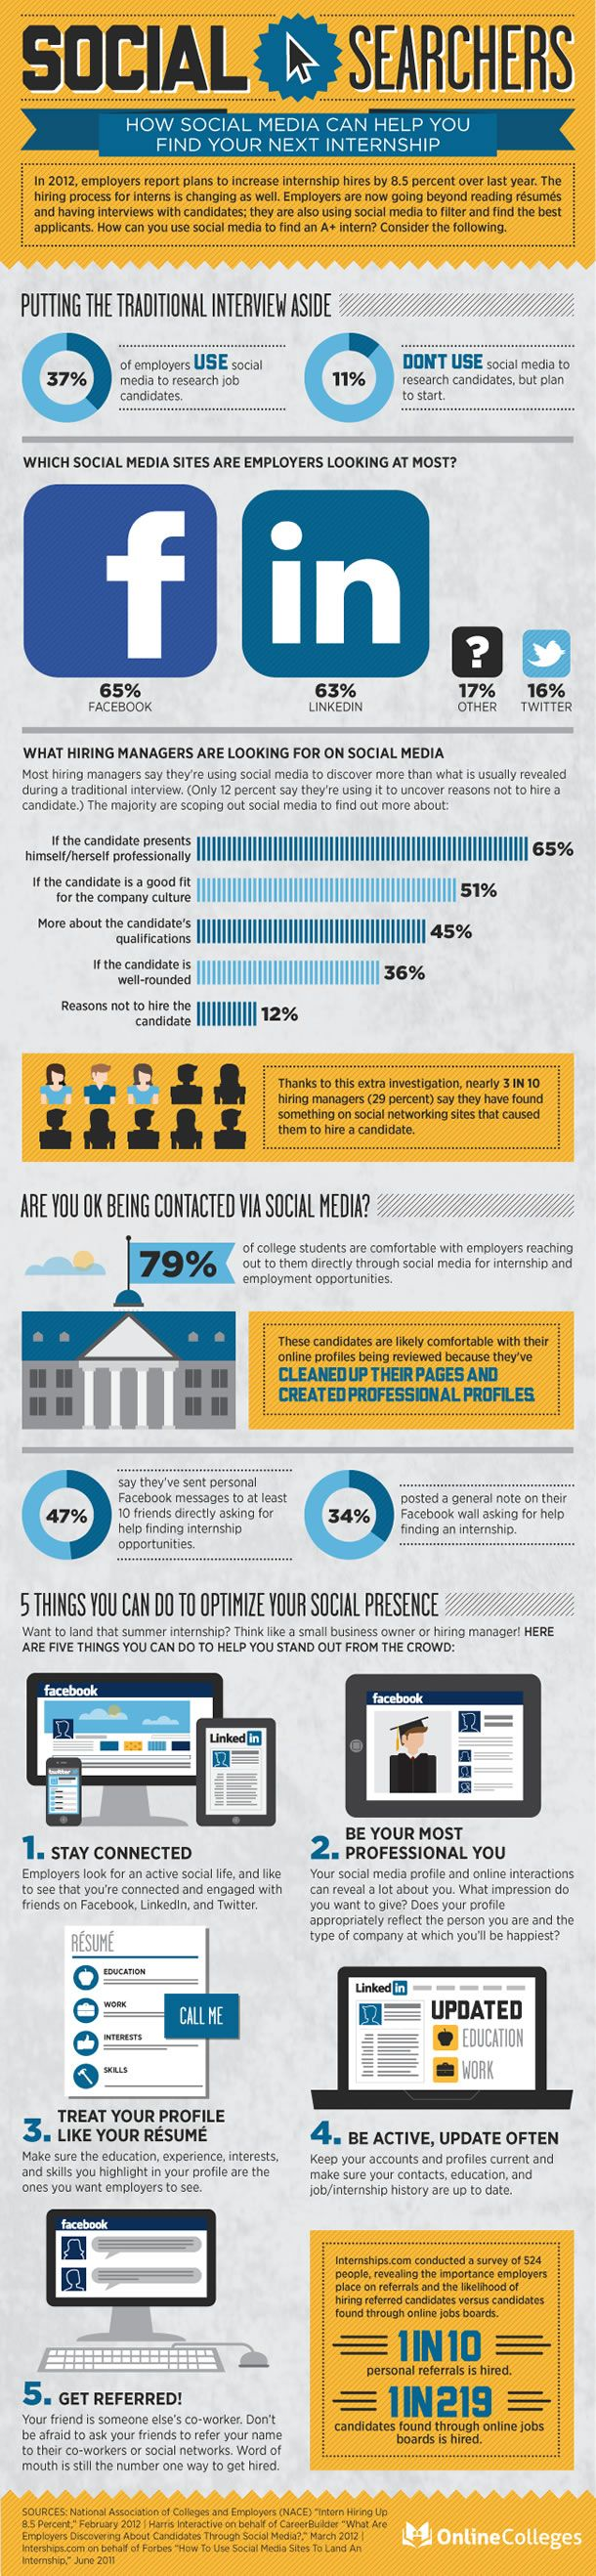 Social searchers [infographie] #SocialMedia